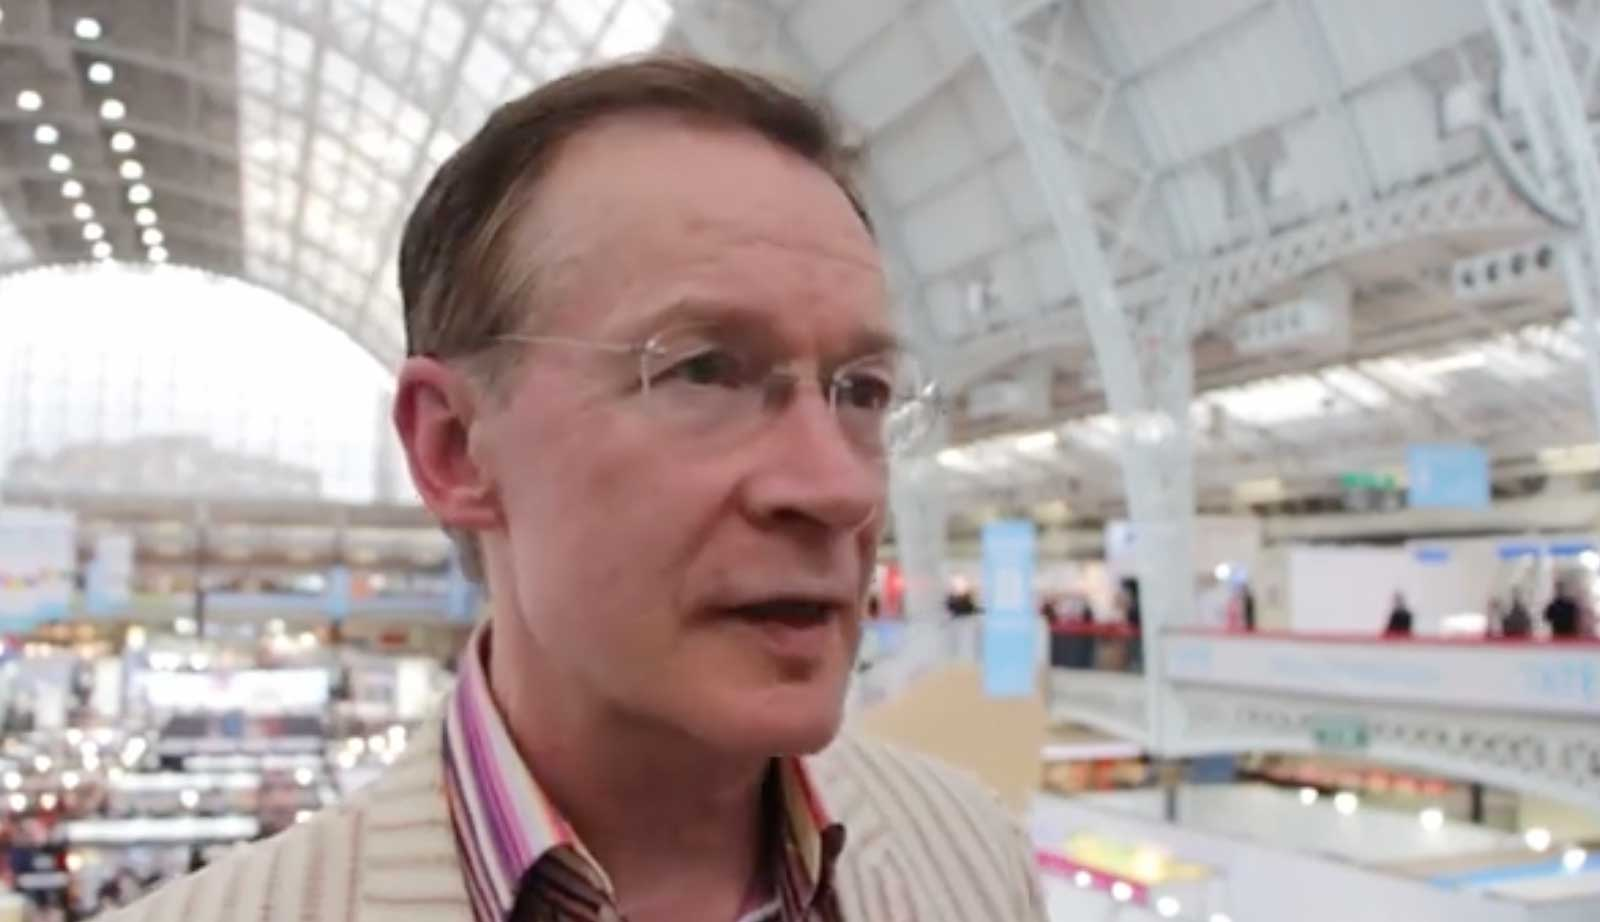 Paul Gravett at London Book fair 2016. Image via LBF